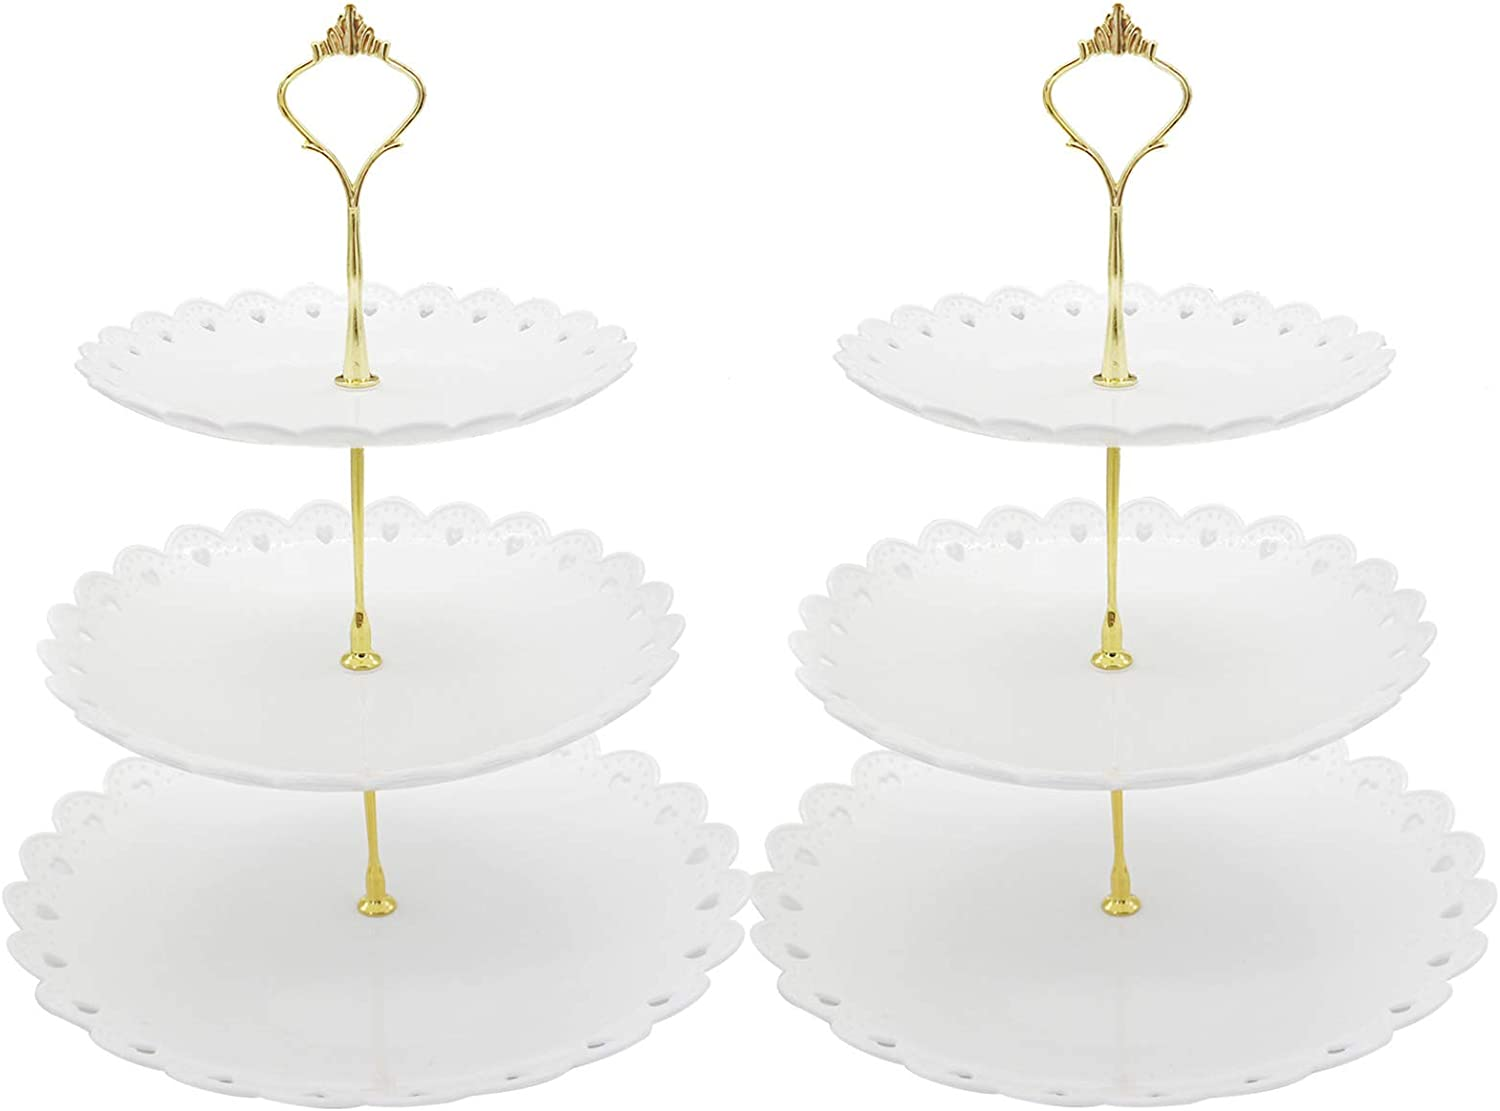 2 Set of 3-Tier Cupcake Stand Fruit Plate Cakes Desserts Fruits Snack Candy Buffet Display Tower Plastic White for Wedding Home Birthday Tea Party Serving Platter (White)